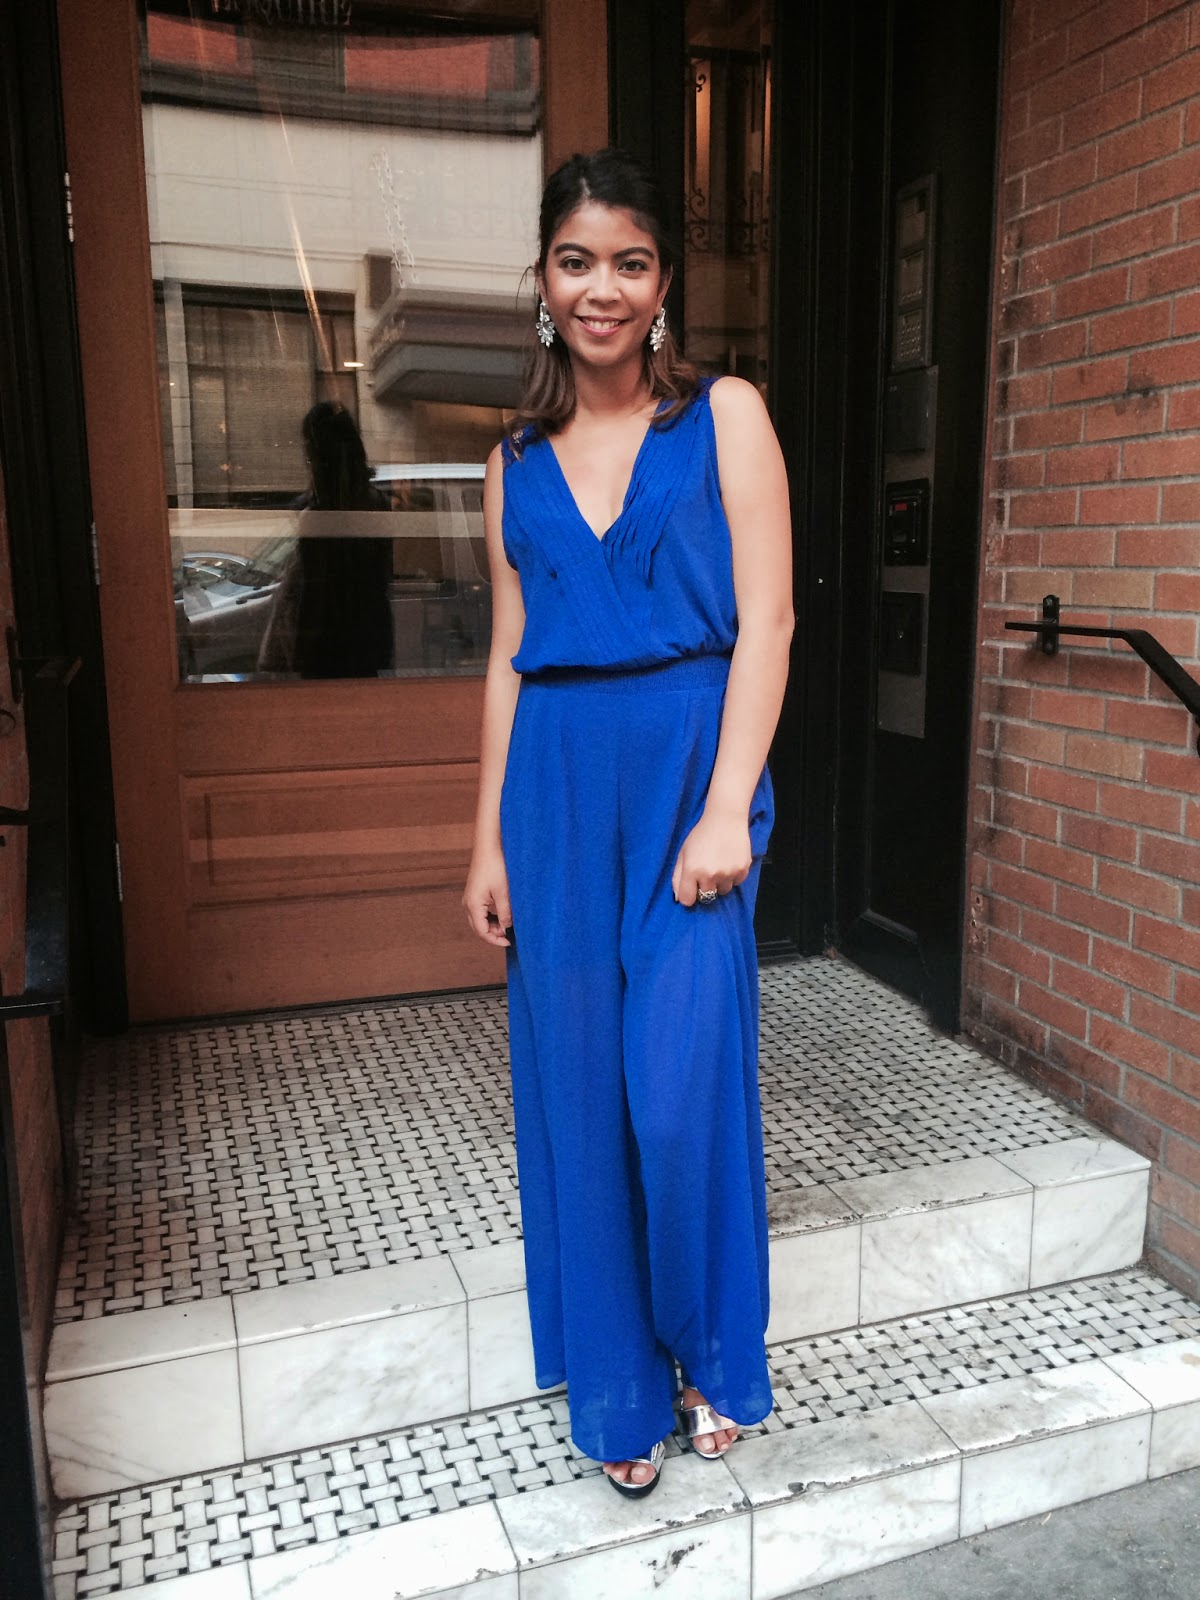 march agraviador, the p town girls, portland blogger, fashion blogger, street style, jumpsuit, mod deals, metallic heels, bachelorette party, ootn, what I wore tonight